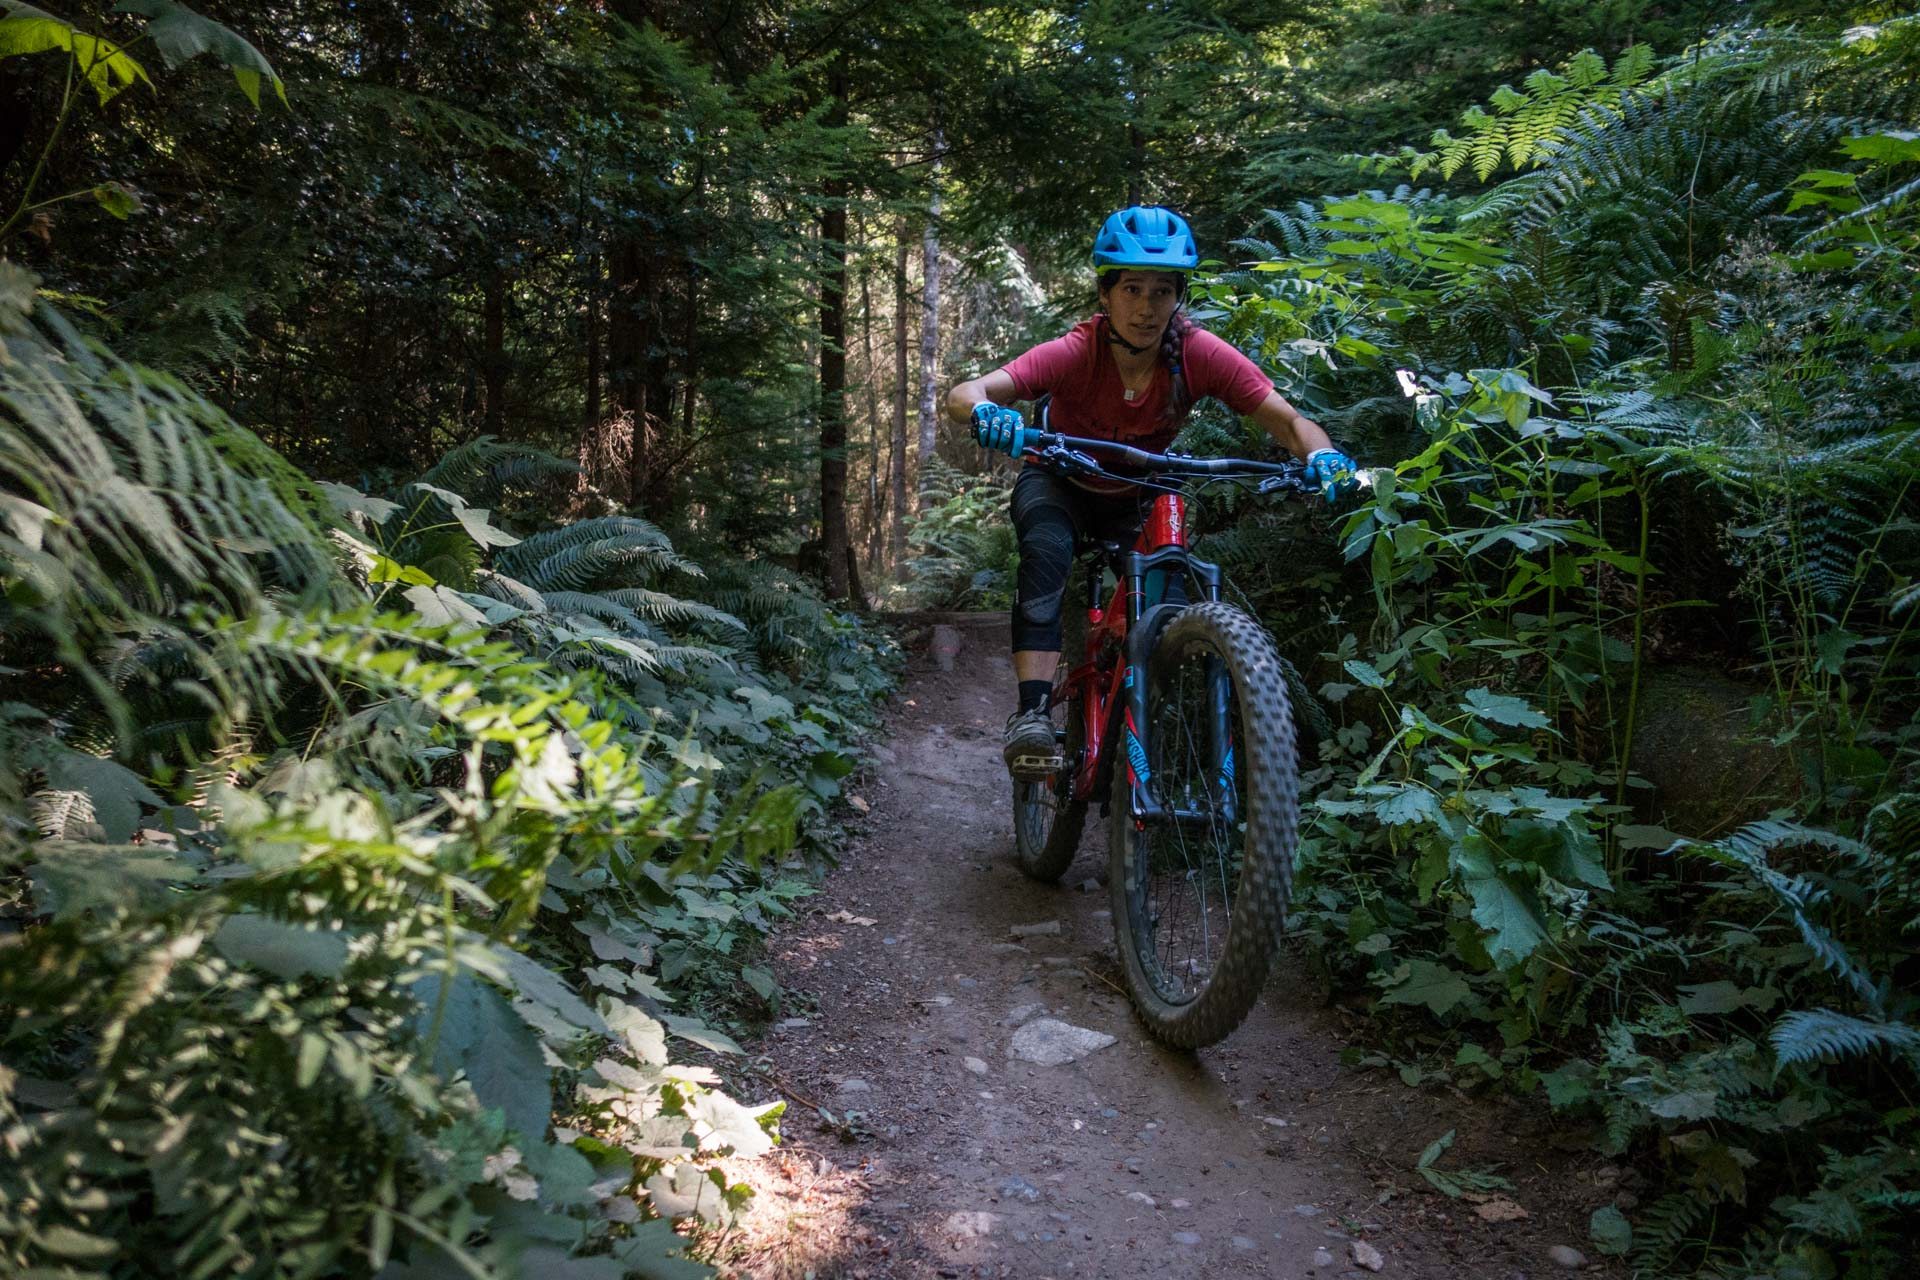 The Mojo 3 is a confidence inspiring, trail slaying gazelle of a bike.